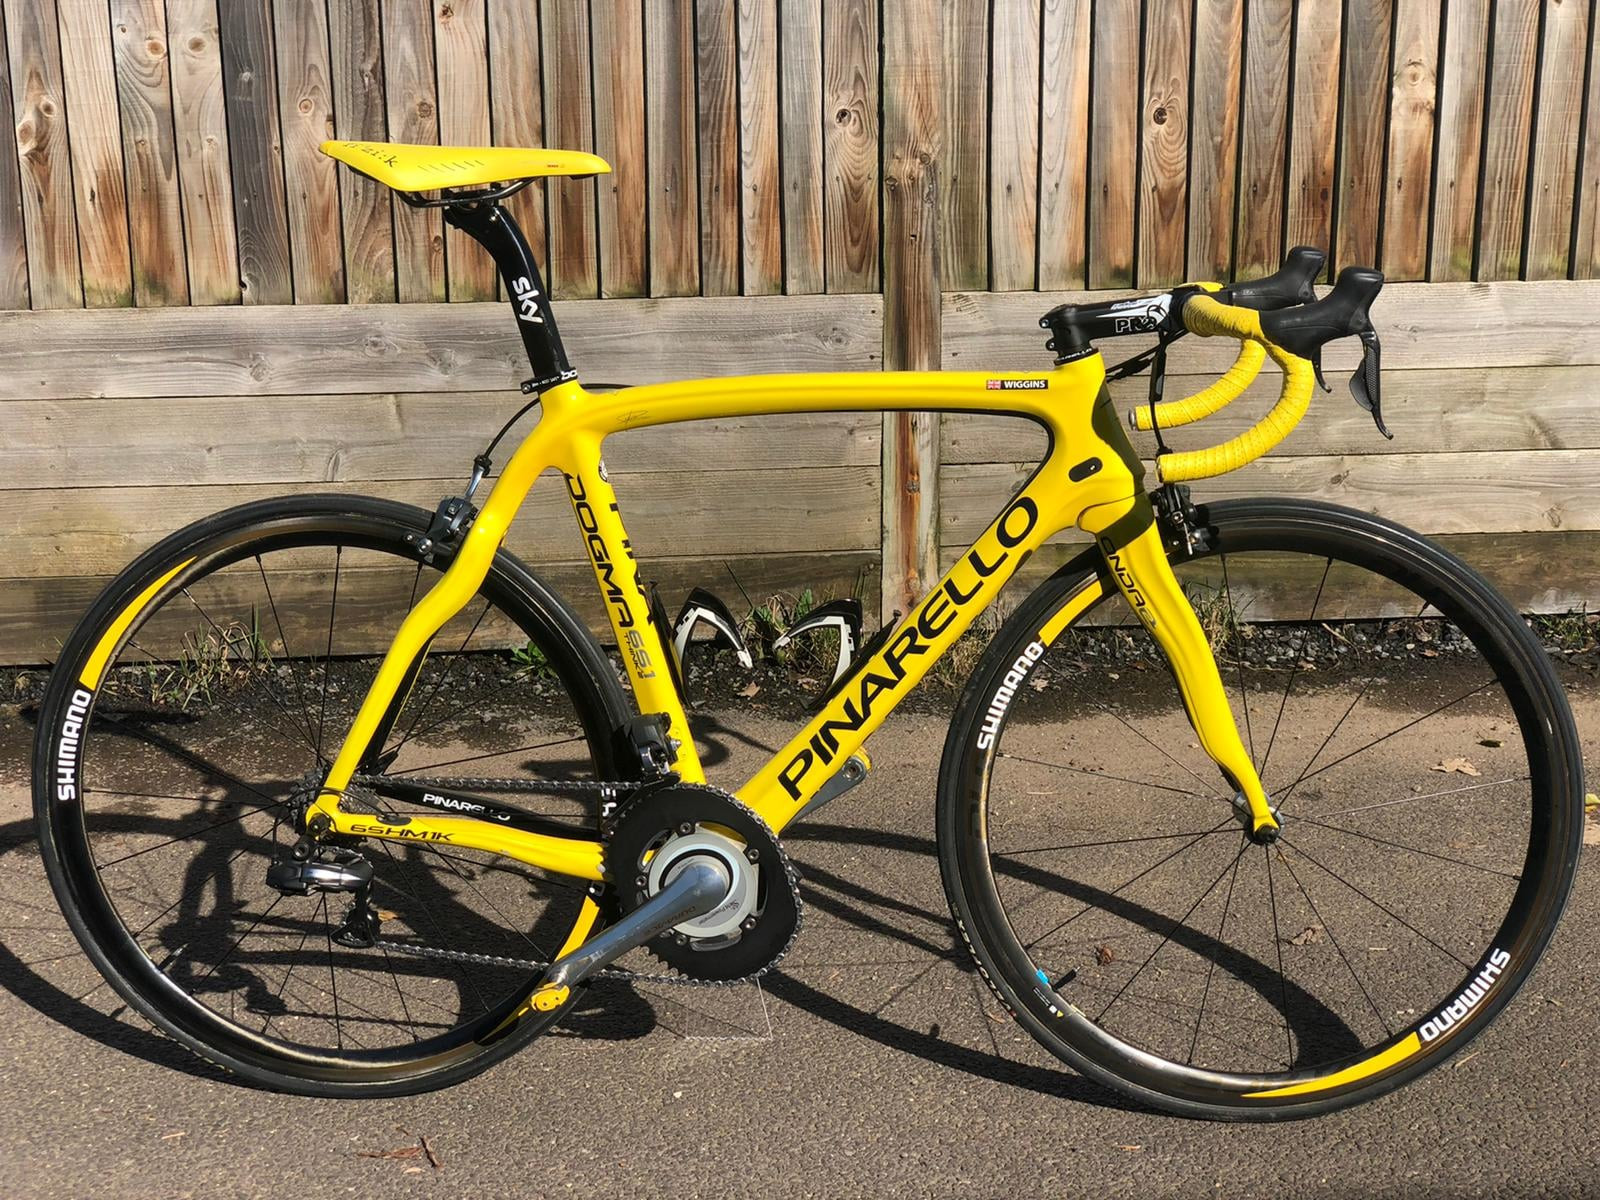 The bike, a custom edition Pinarello Dogma 65.1, is up for sale at £7,500 ©Facebook